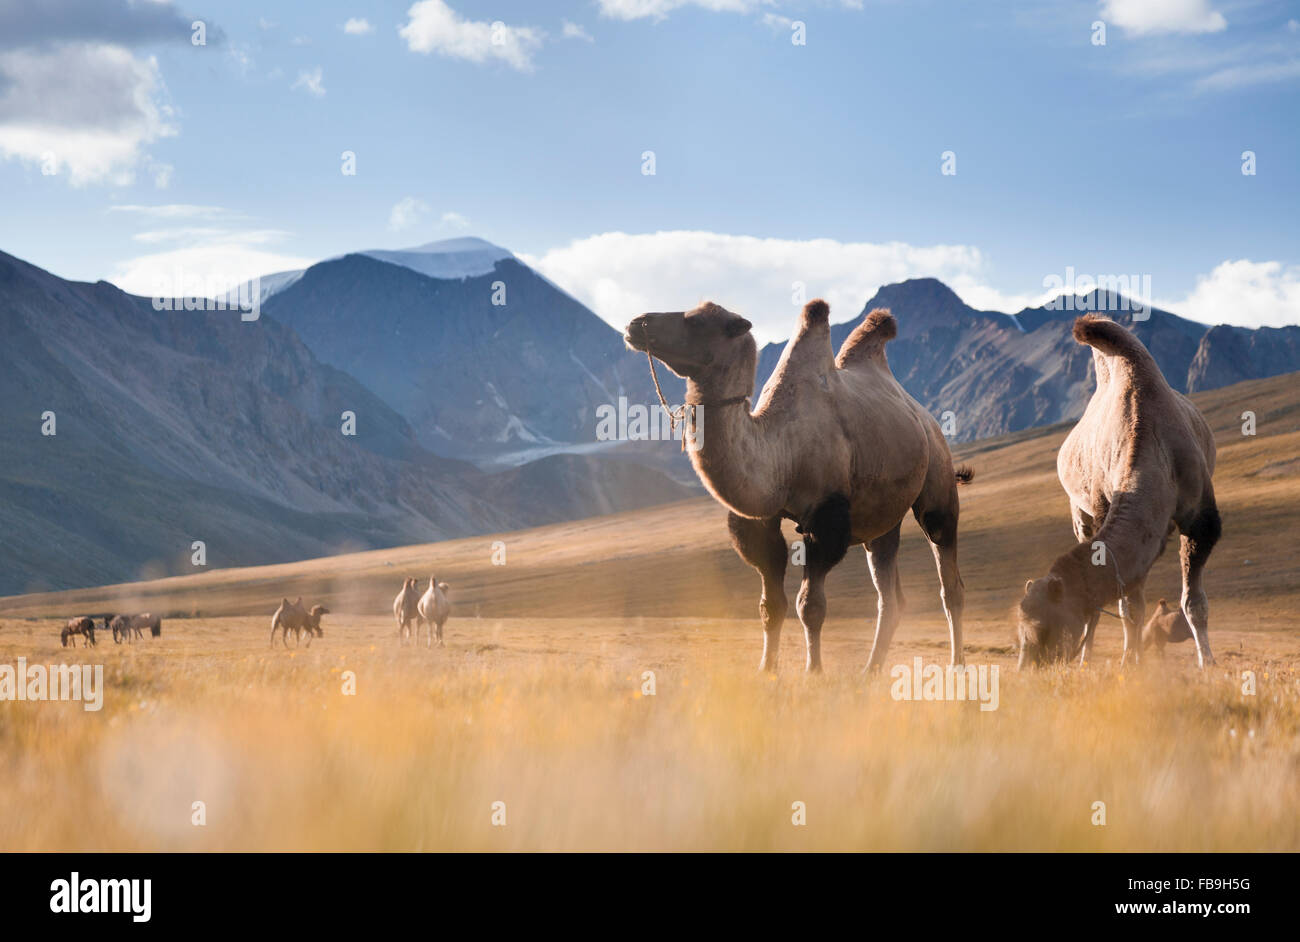 Camels grazing in Kharkhiraa Turgen National Park, far-western Mongolia. - Stock Image